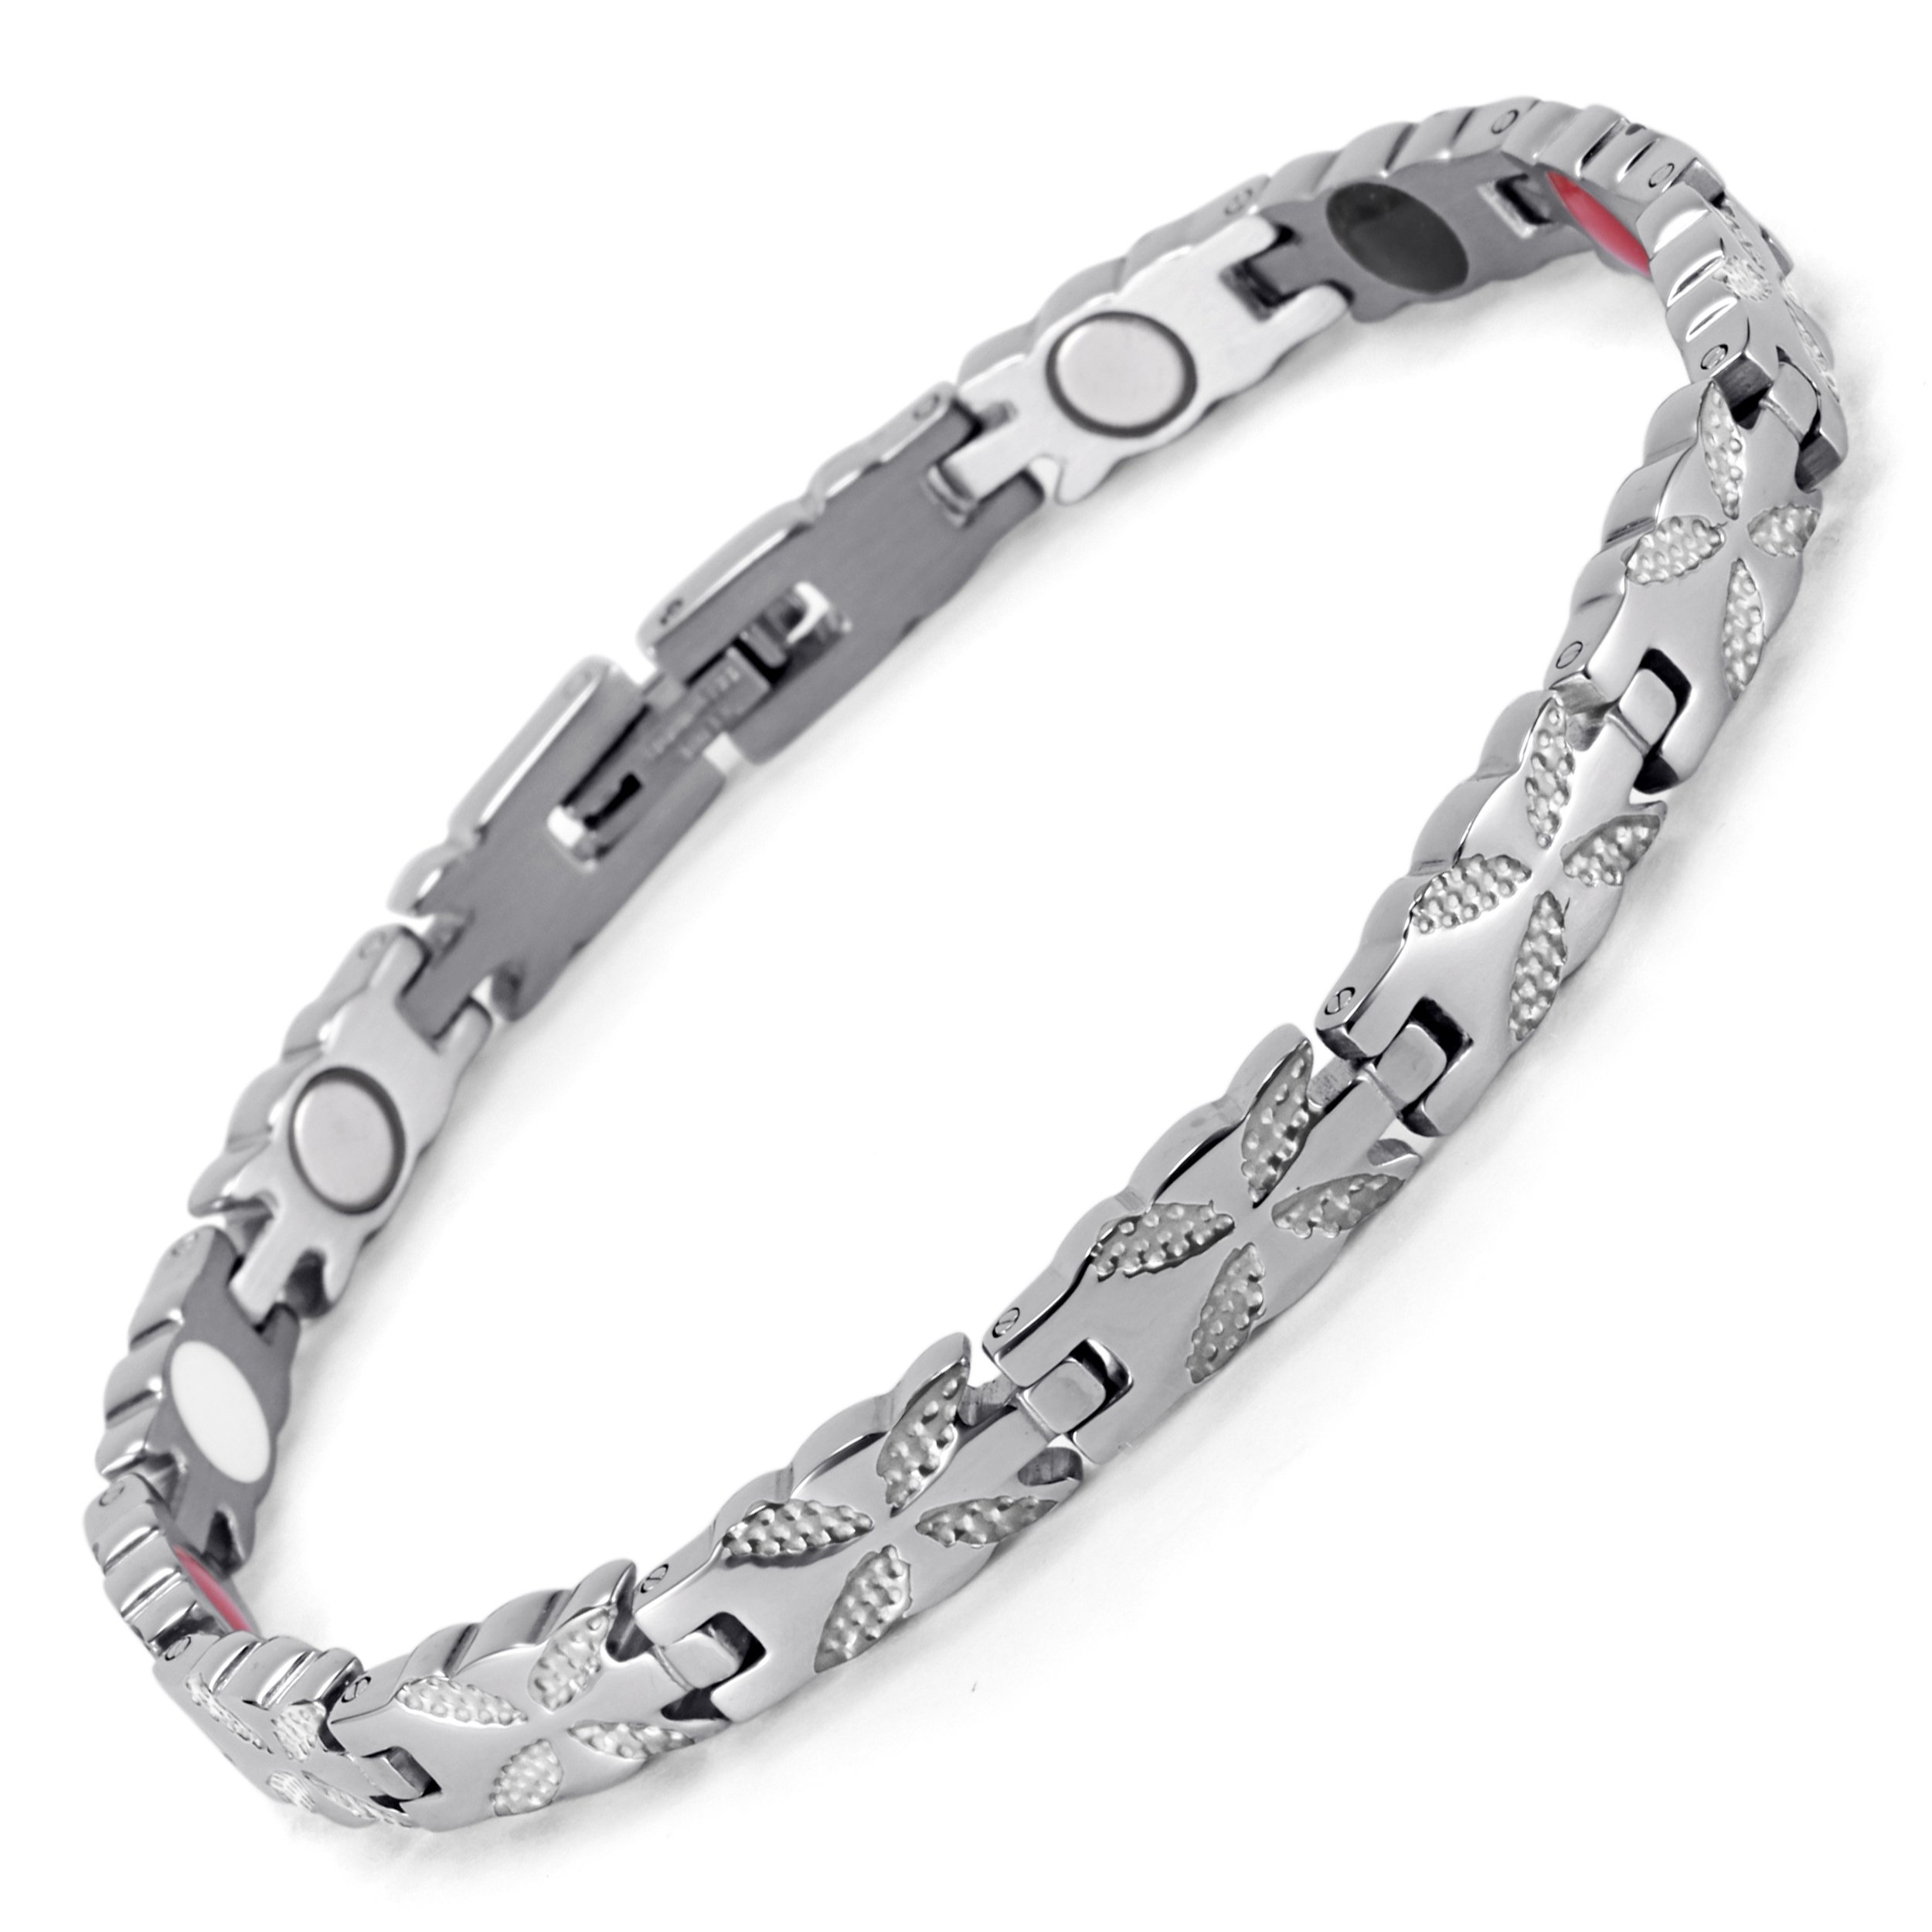 Lifestyle Stainless Steel Magnetic Therapy Bracelet Pain Relief for Arthritis and Carpal Tunnel. Magnets, far infrared, germanium, negative Ion bracelet (silver)